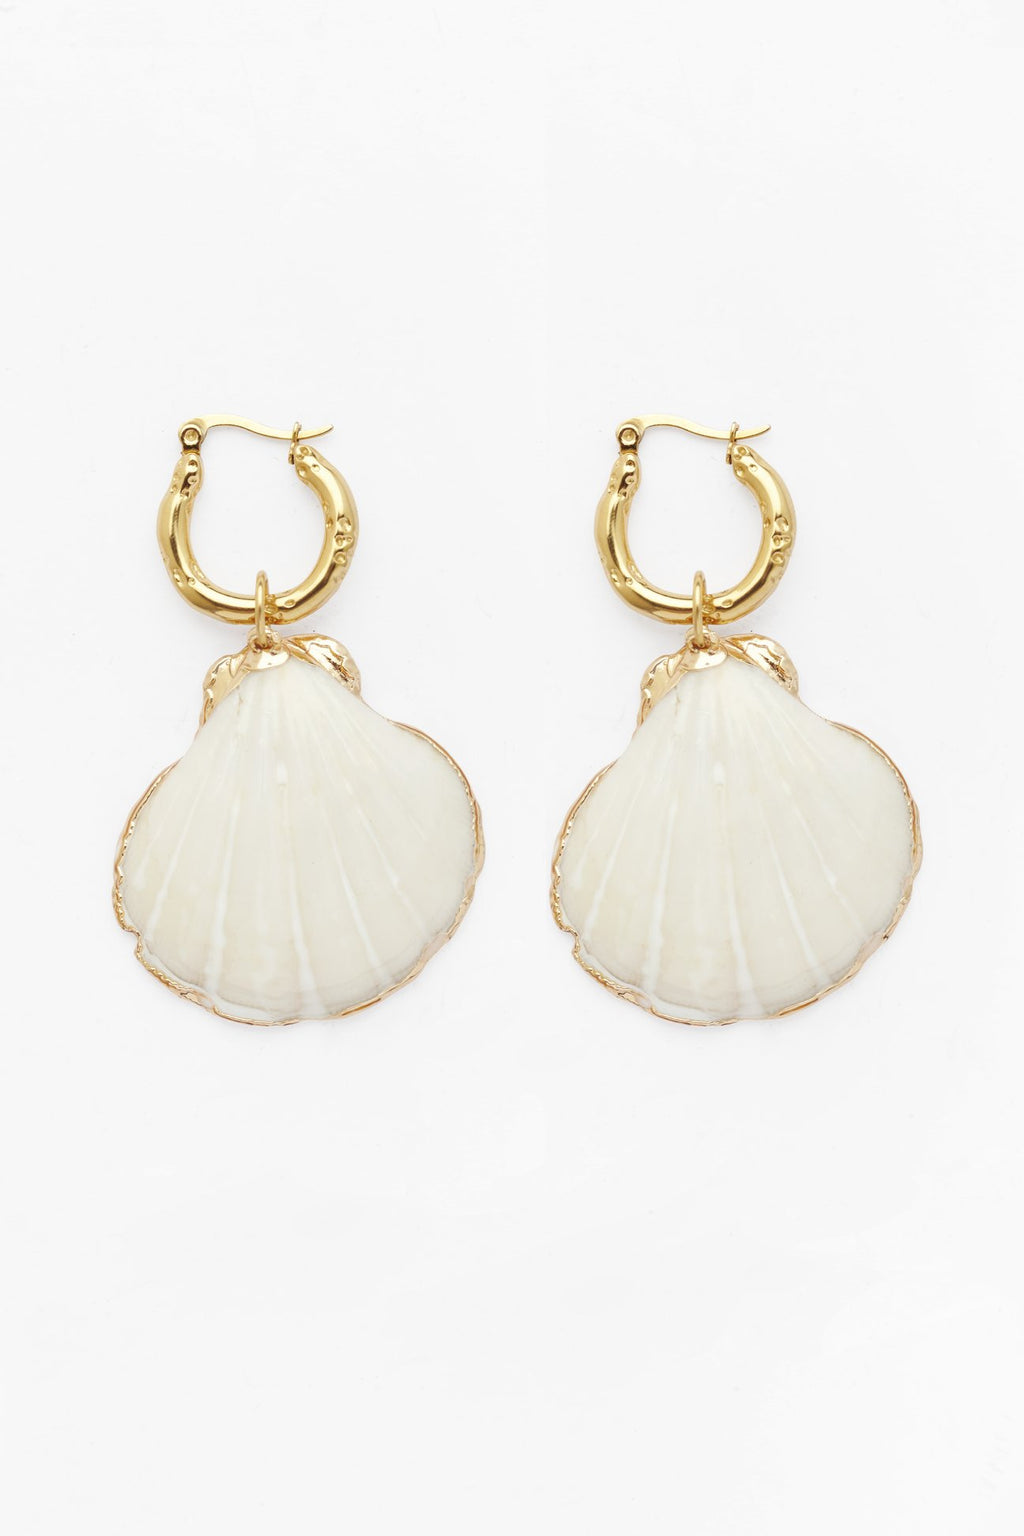 South Island earrings